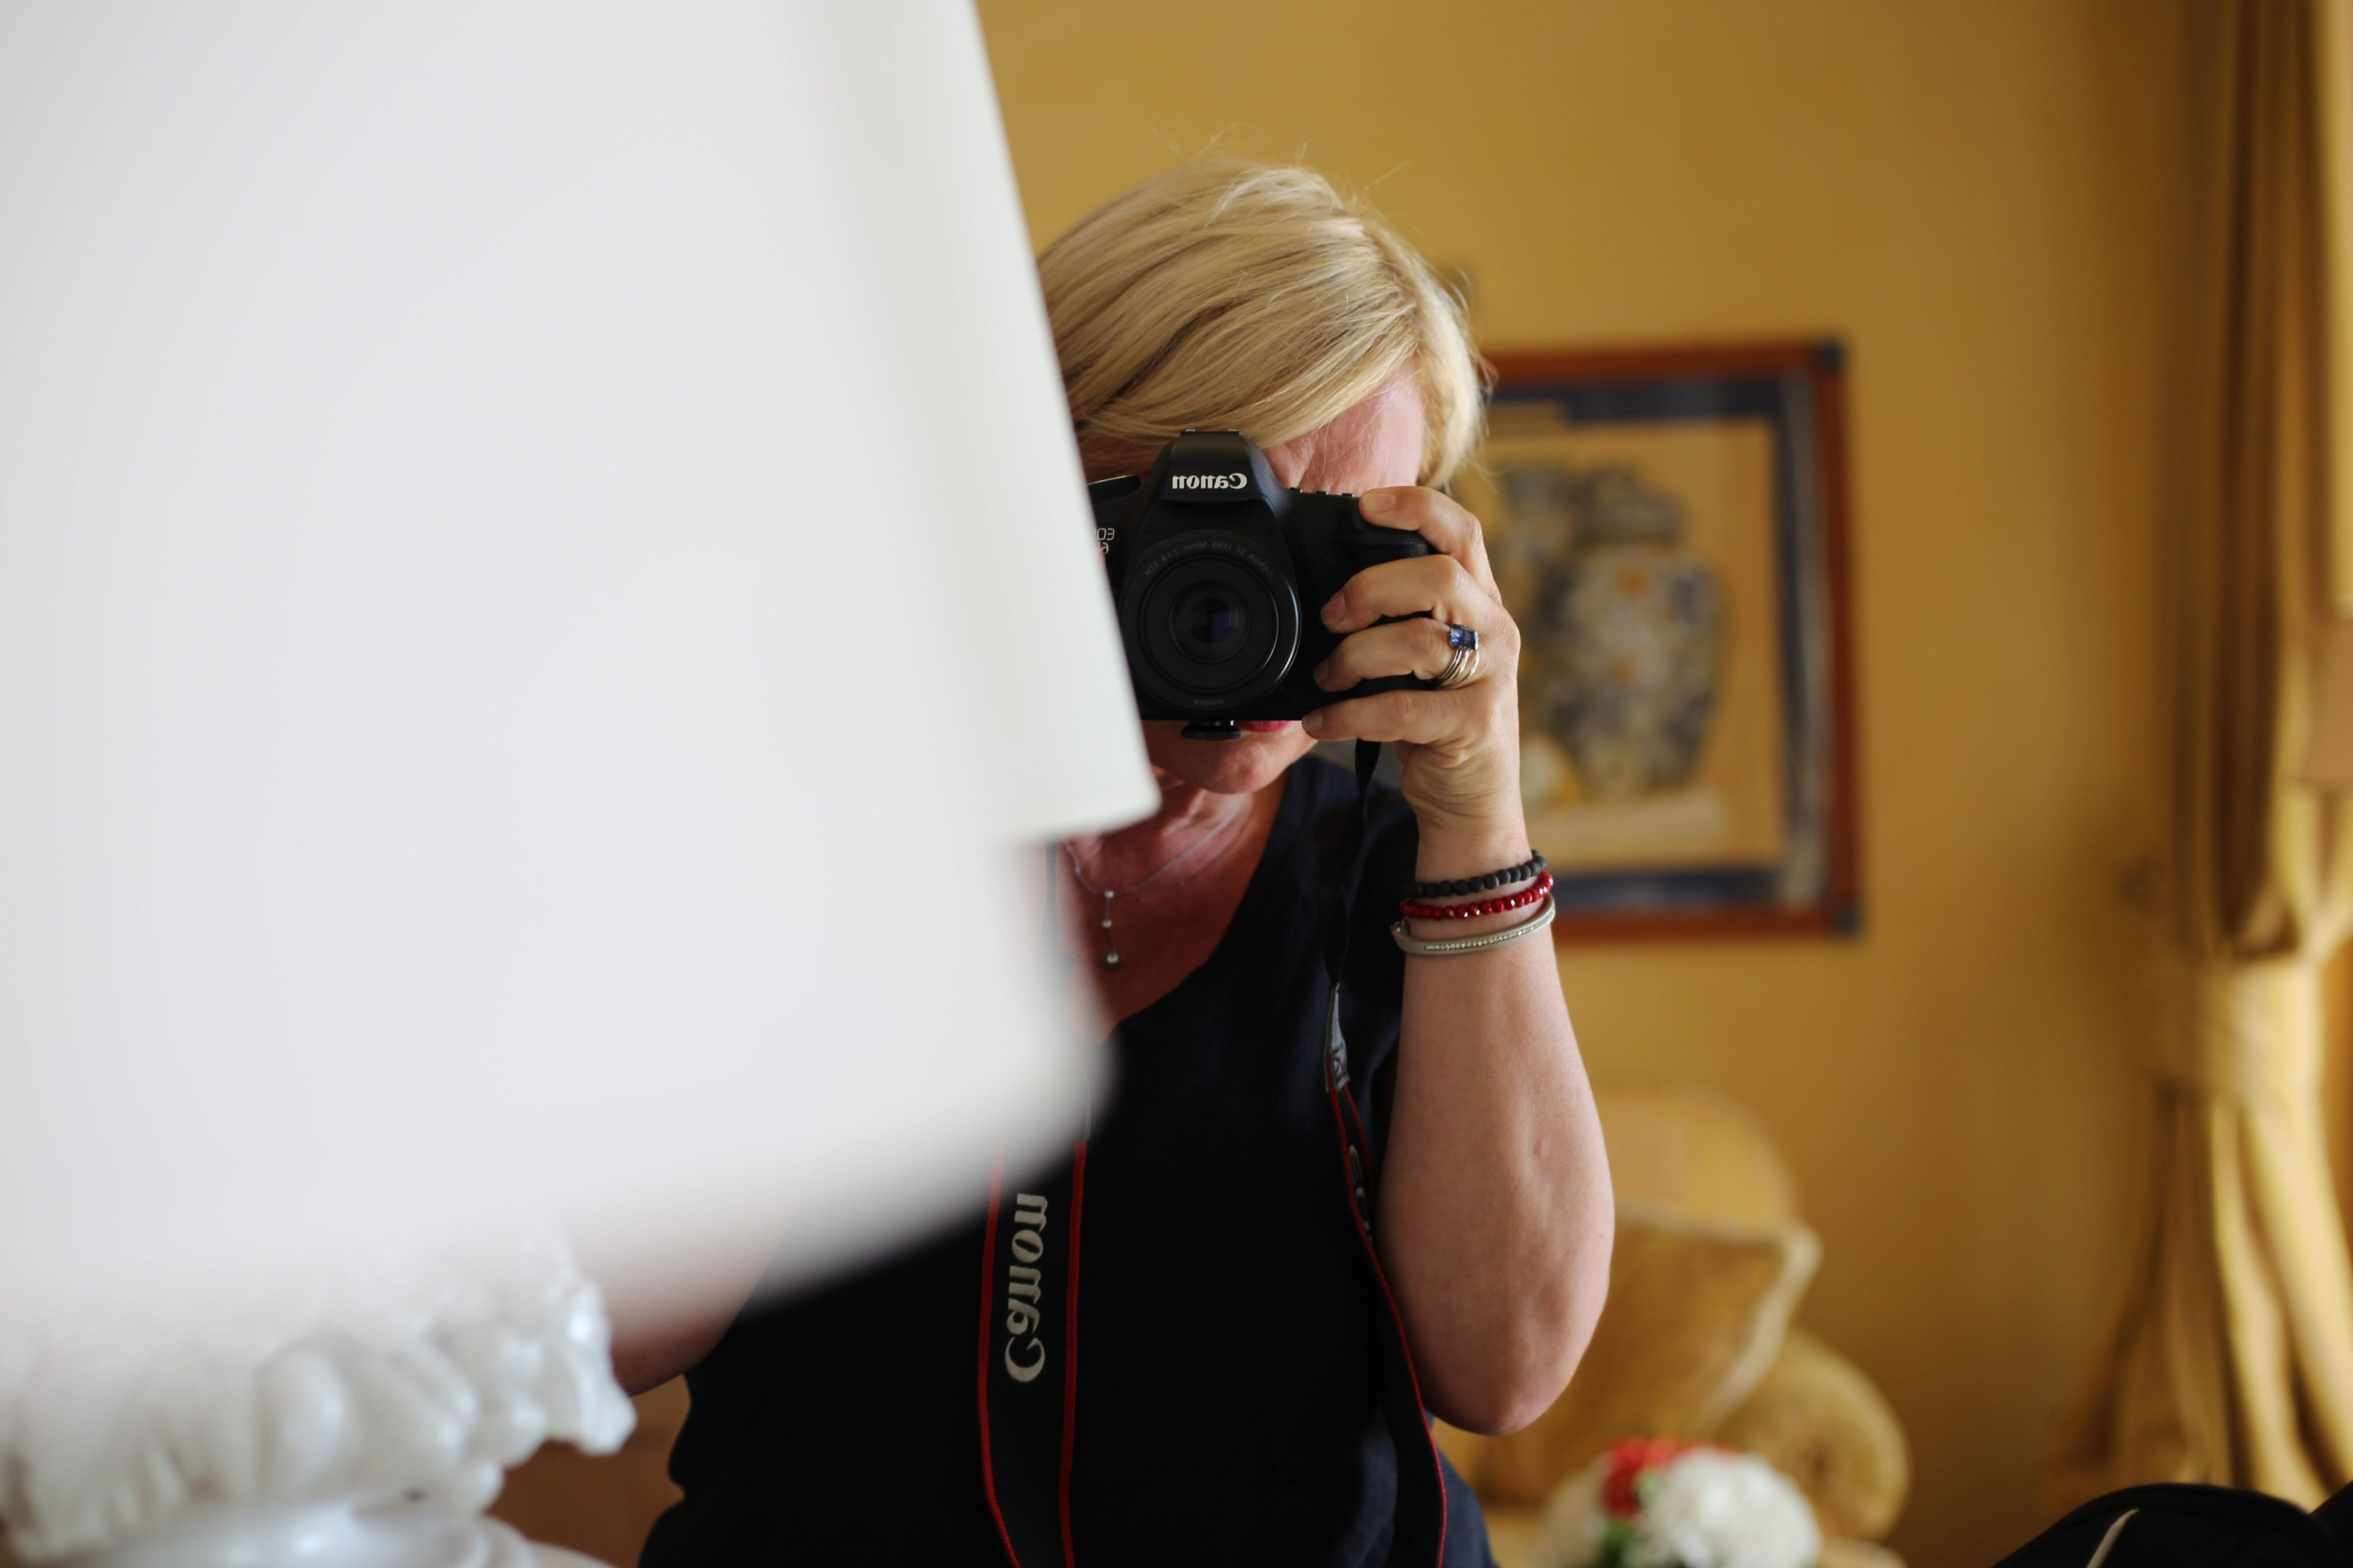 photographing, photography themes, real people, camera - photographic equipment, holding, one person, photographer, technology, indoors, blond hair, digital single-lens reflex camera, day, close-up, young adult, people